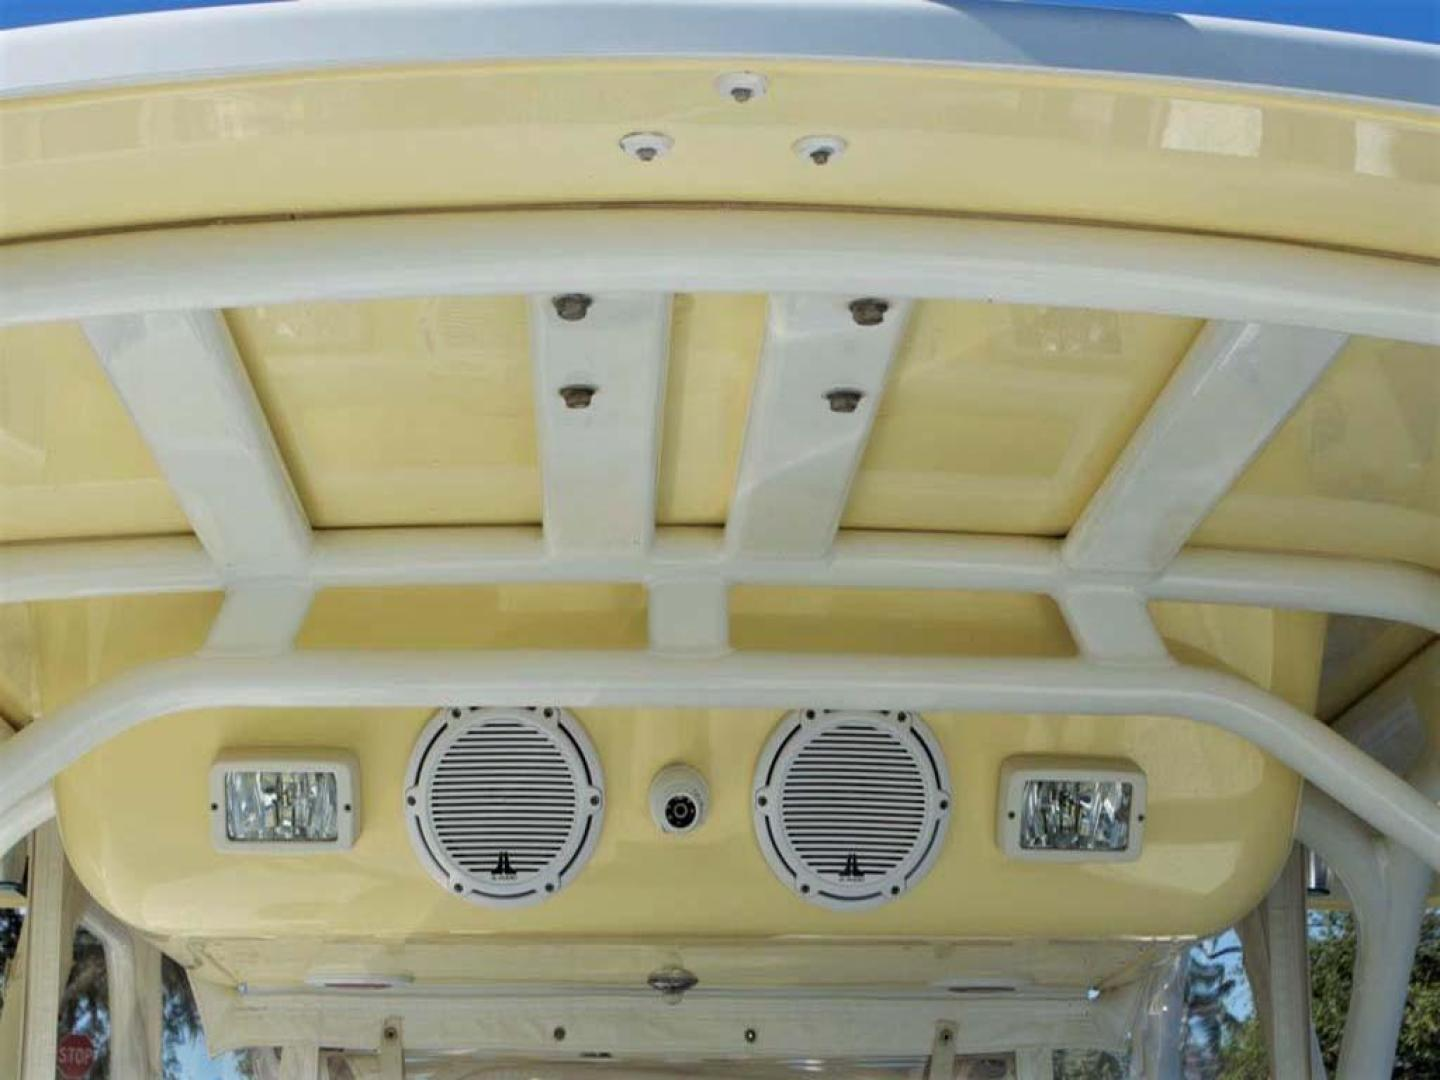 Yellowfin-42-Open-2009-Hard-Charger-Pompano-Florida-United-States-Forward-Speakers-and-Camera-929765